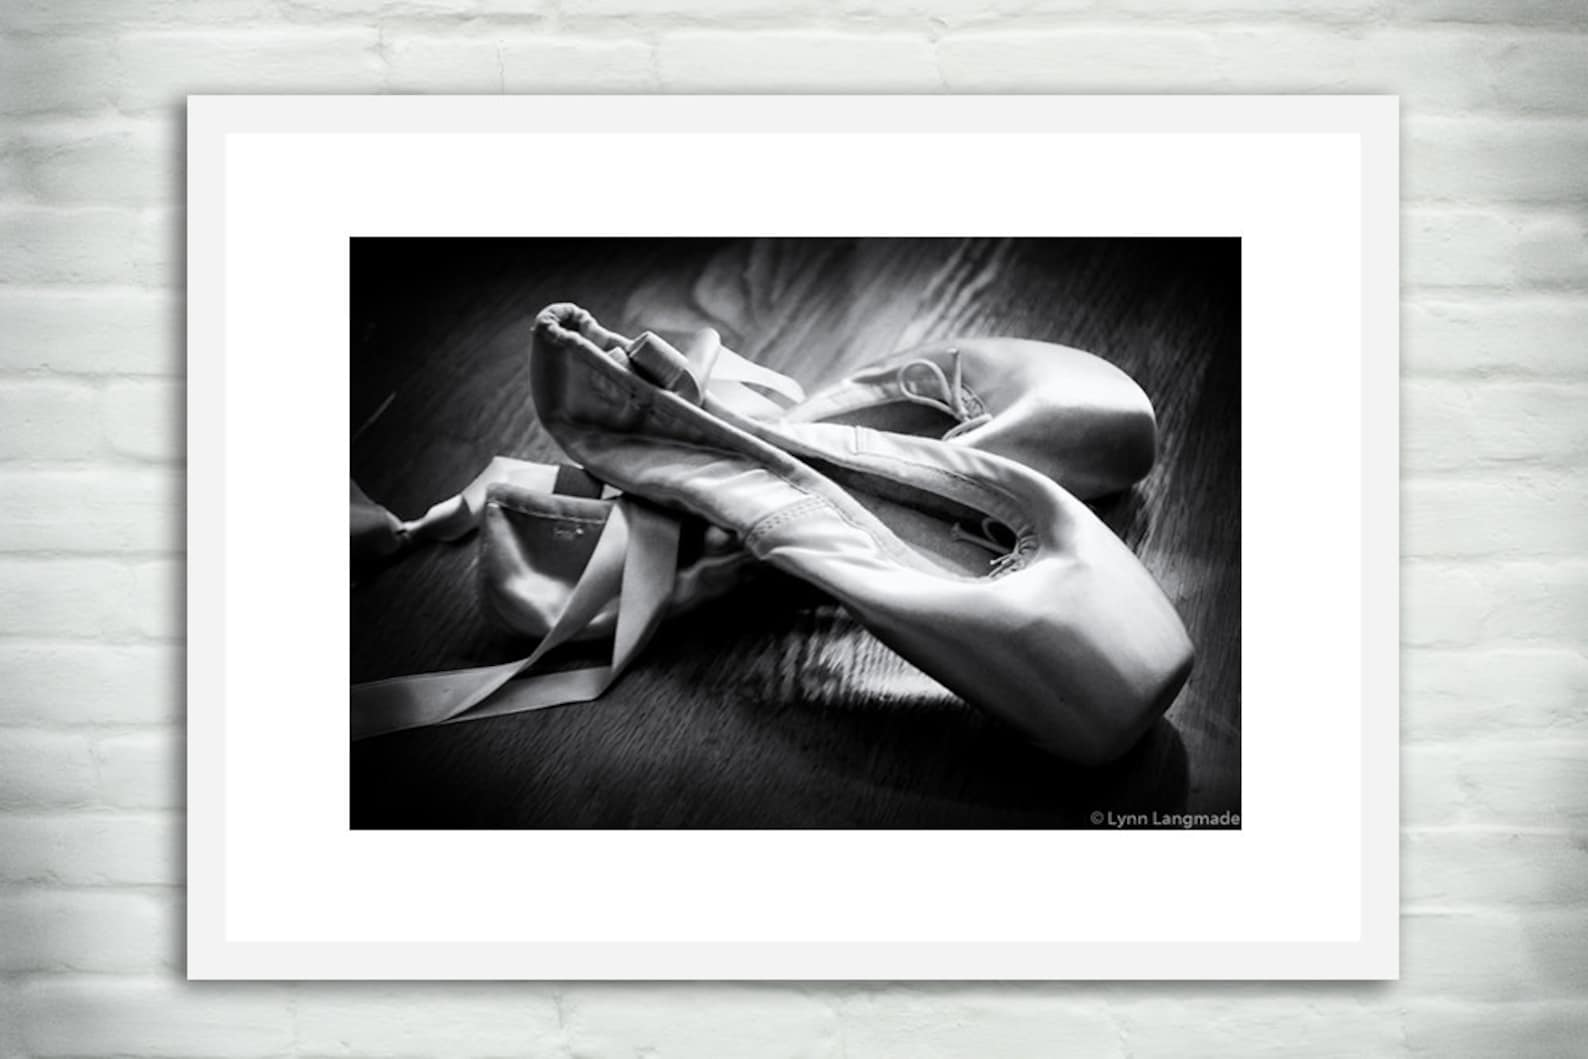 ballet prints - pointe shoes black and white 8x10 photo 11x14 large wall art 16x20 ballet art 5x7 ballerina dance photography &q